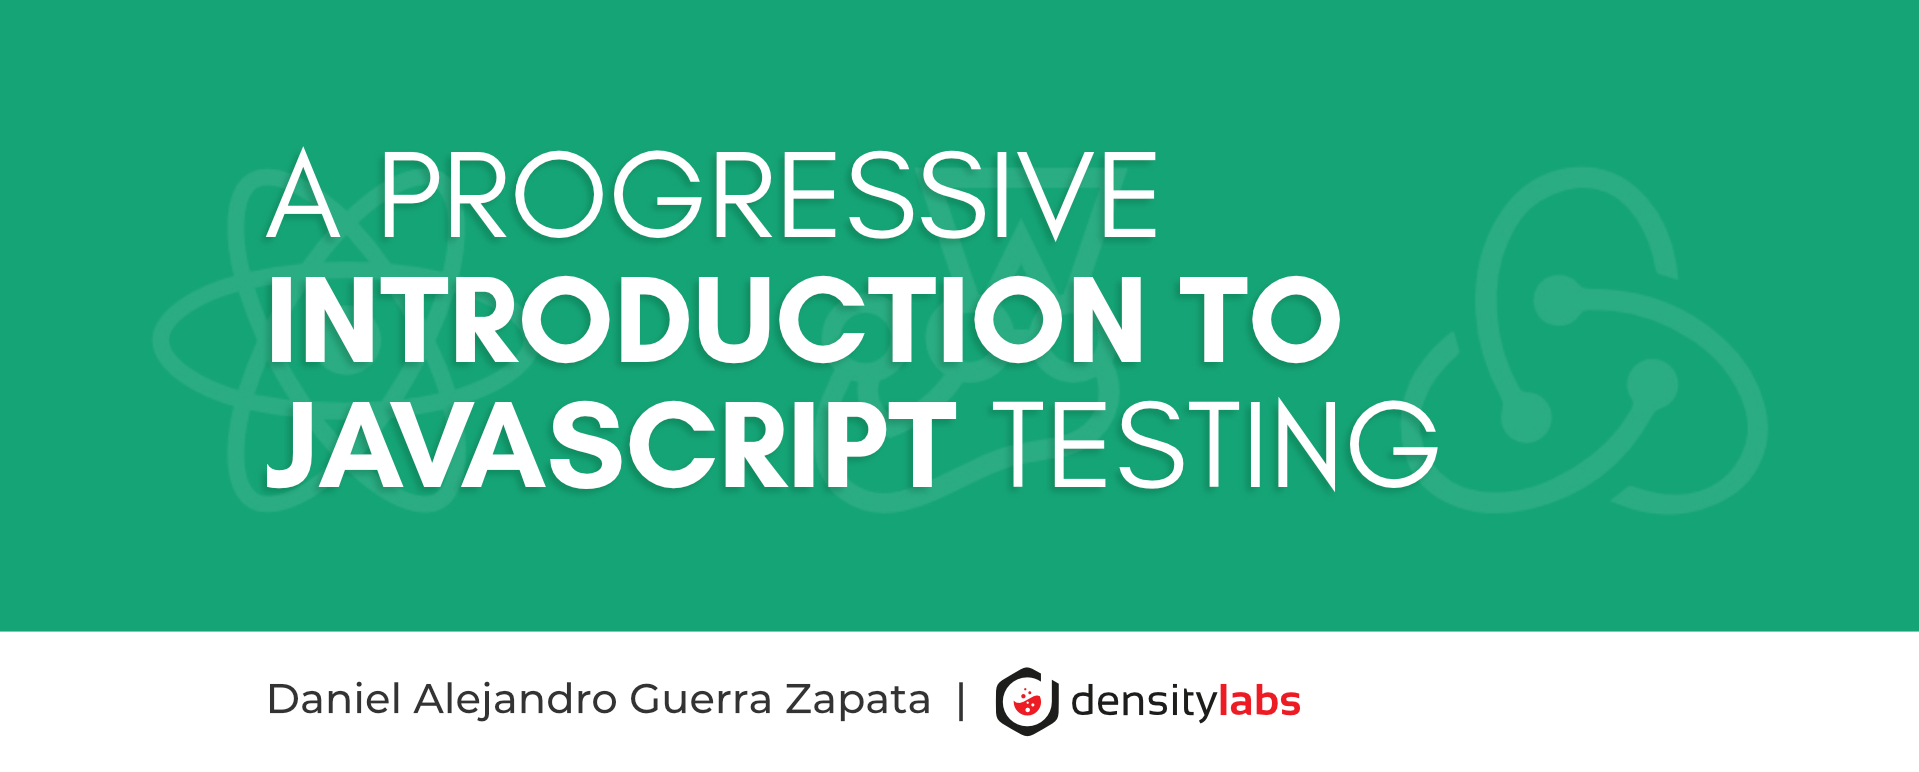 A Progressive Introduction to Javascript Testing